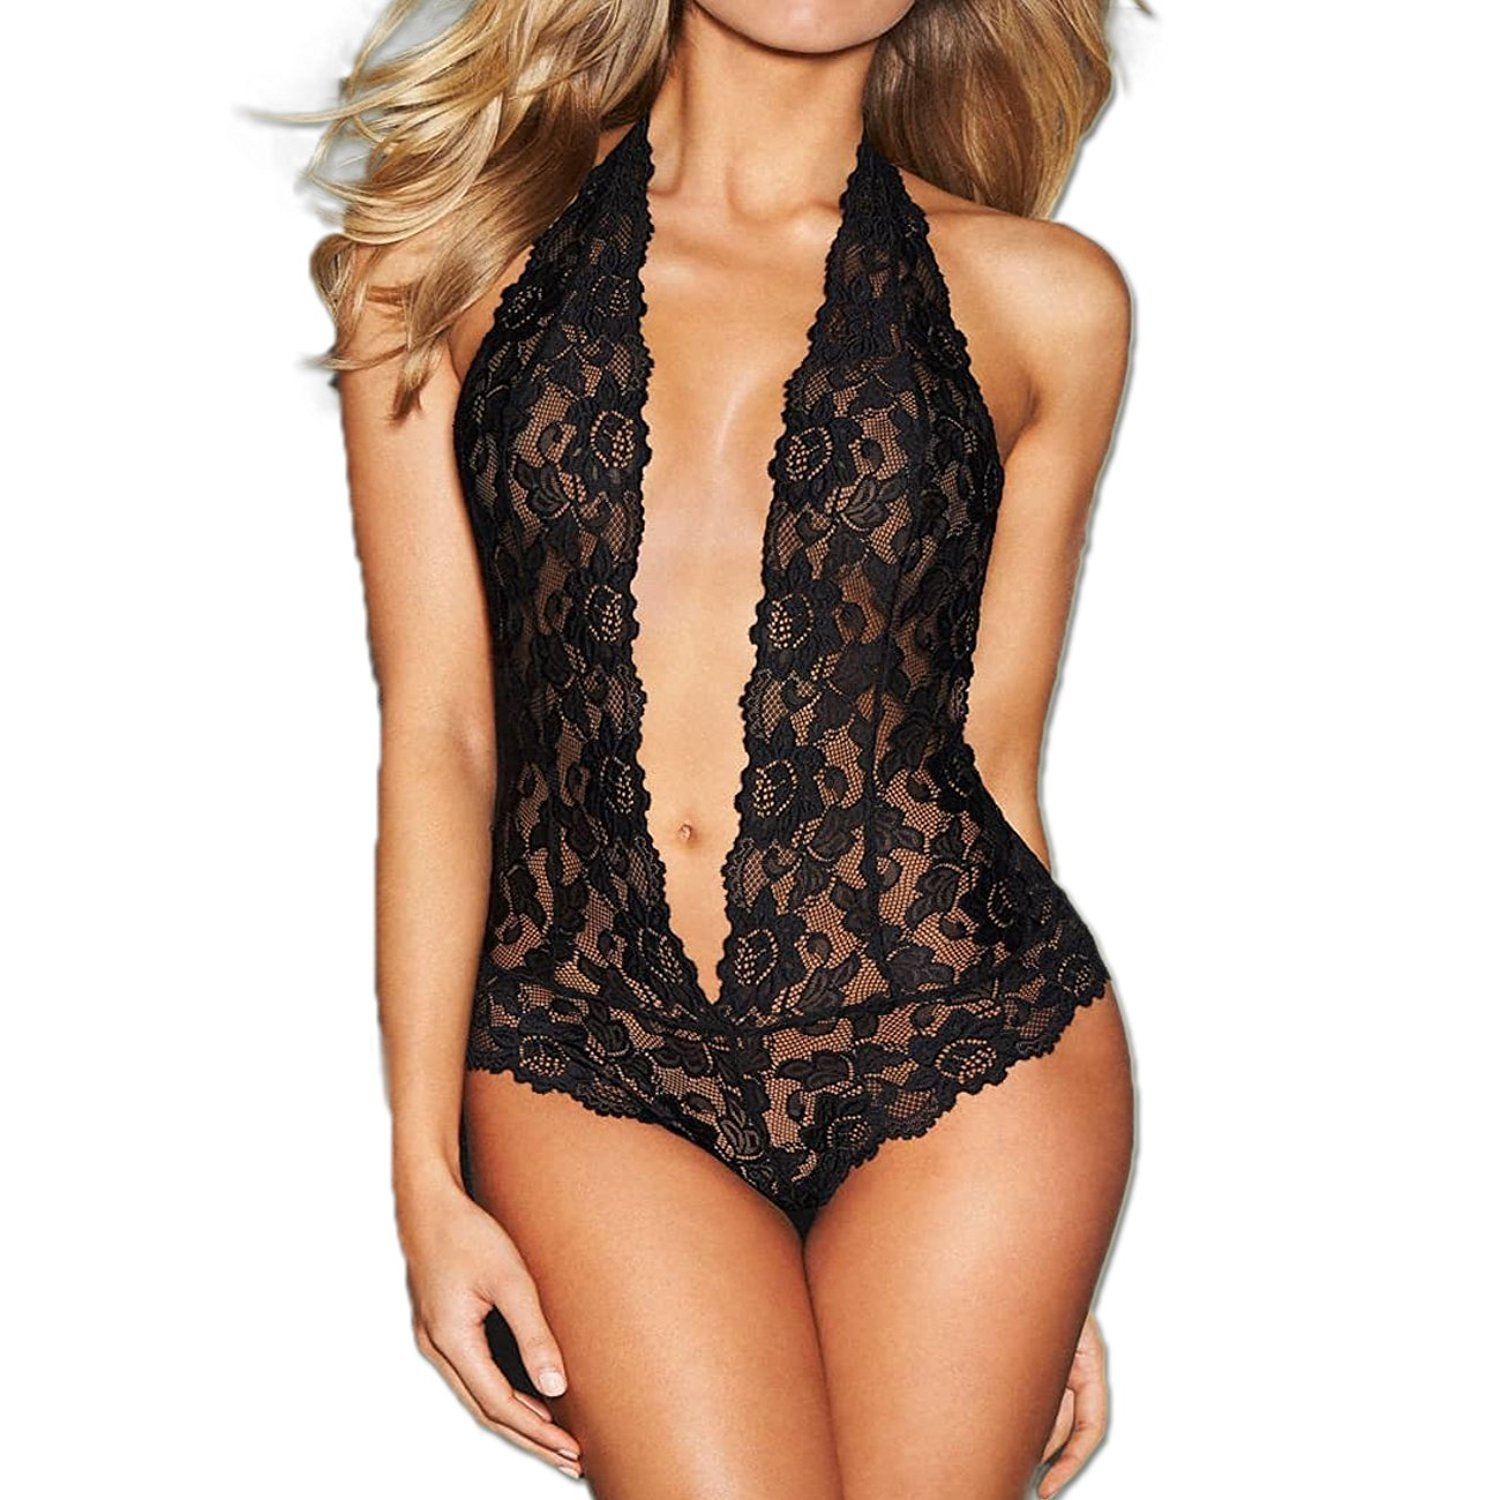 04de17d23f49d MIYU Womens Halter Sexy Lingerie Lace Teddy Bodysuit Deep V Open Back  Nightwear